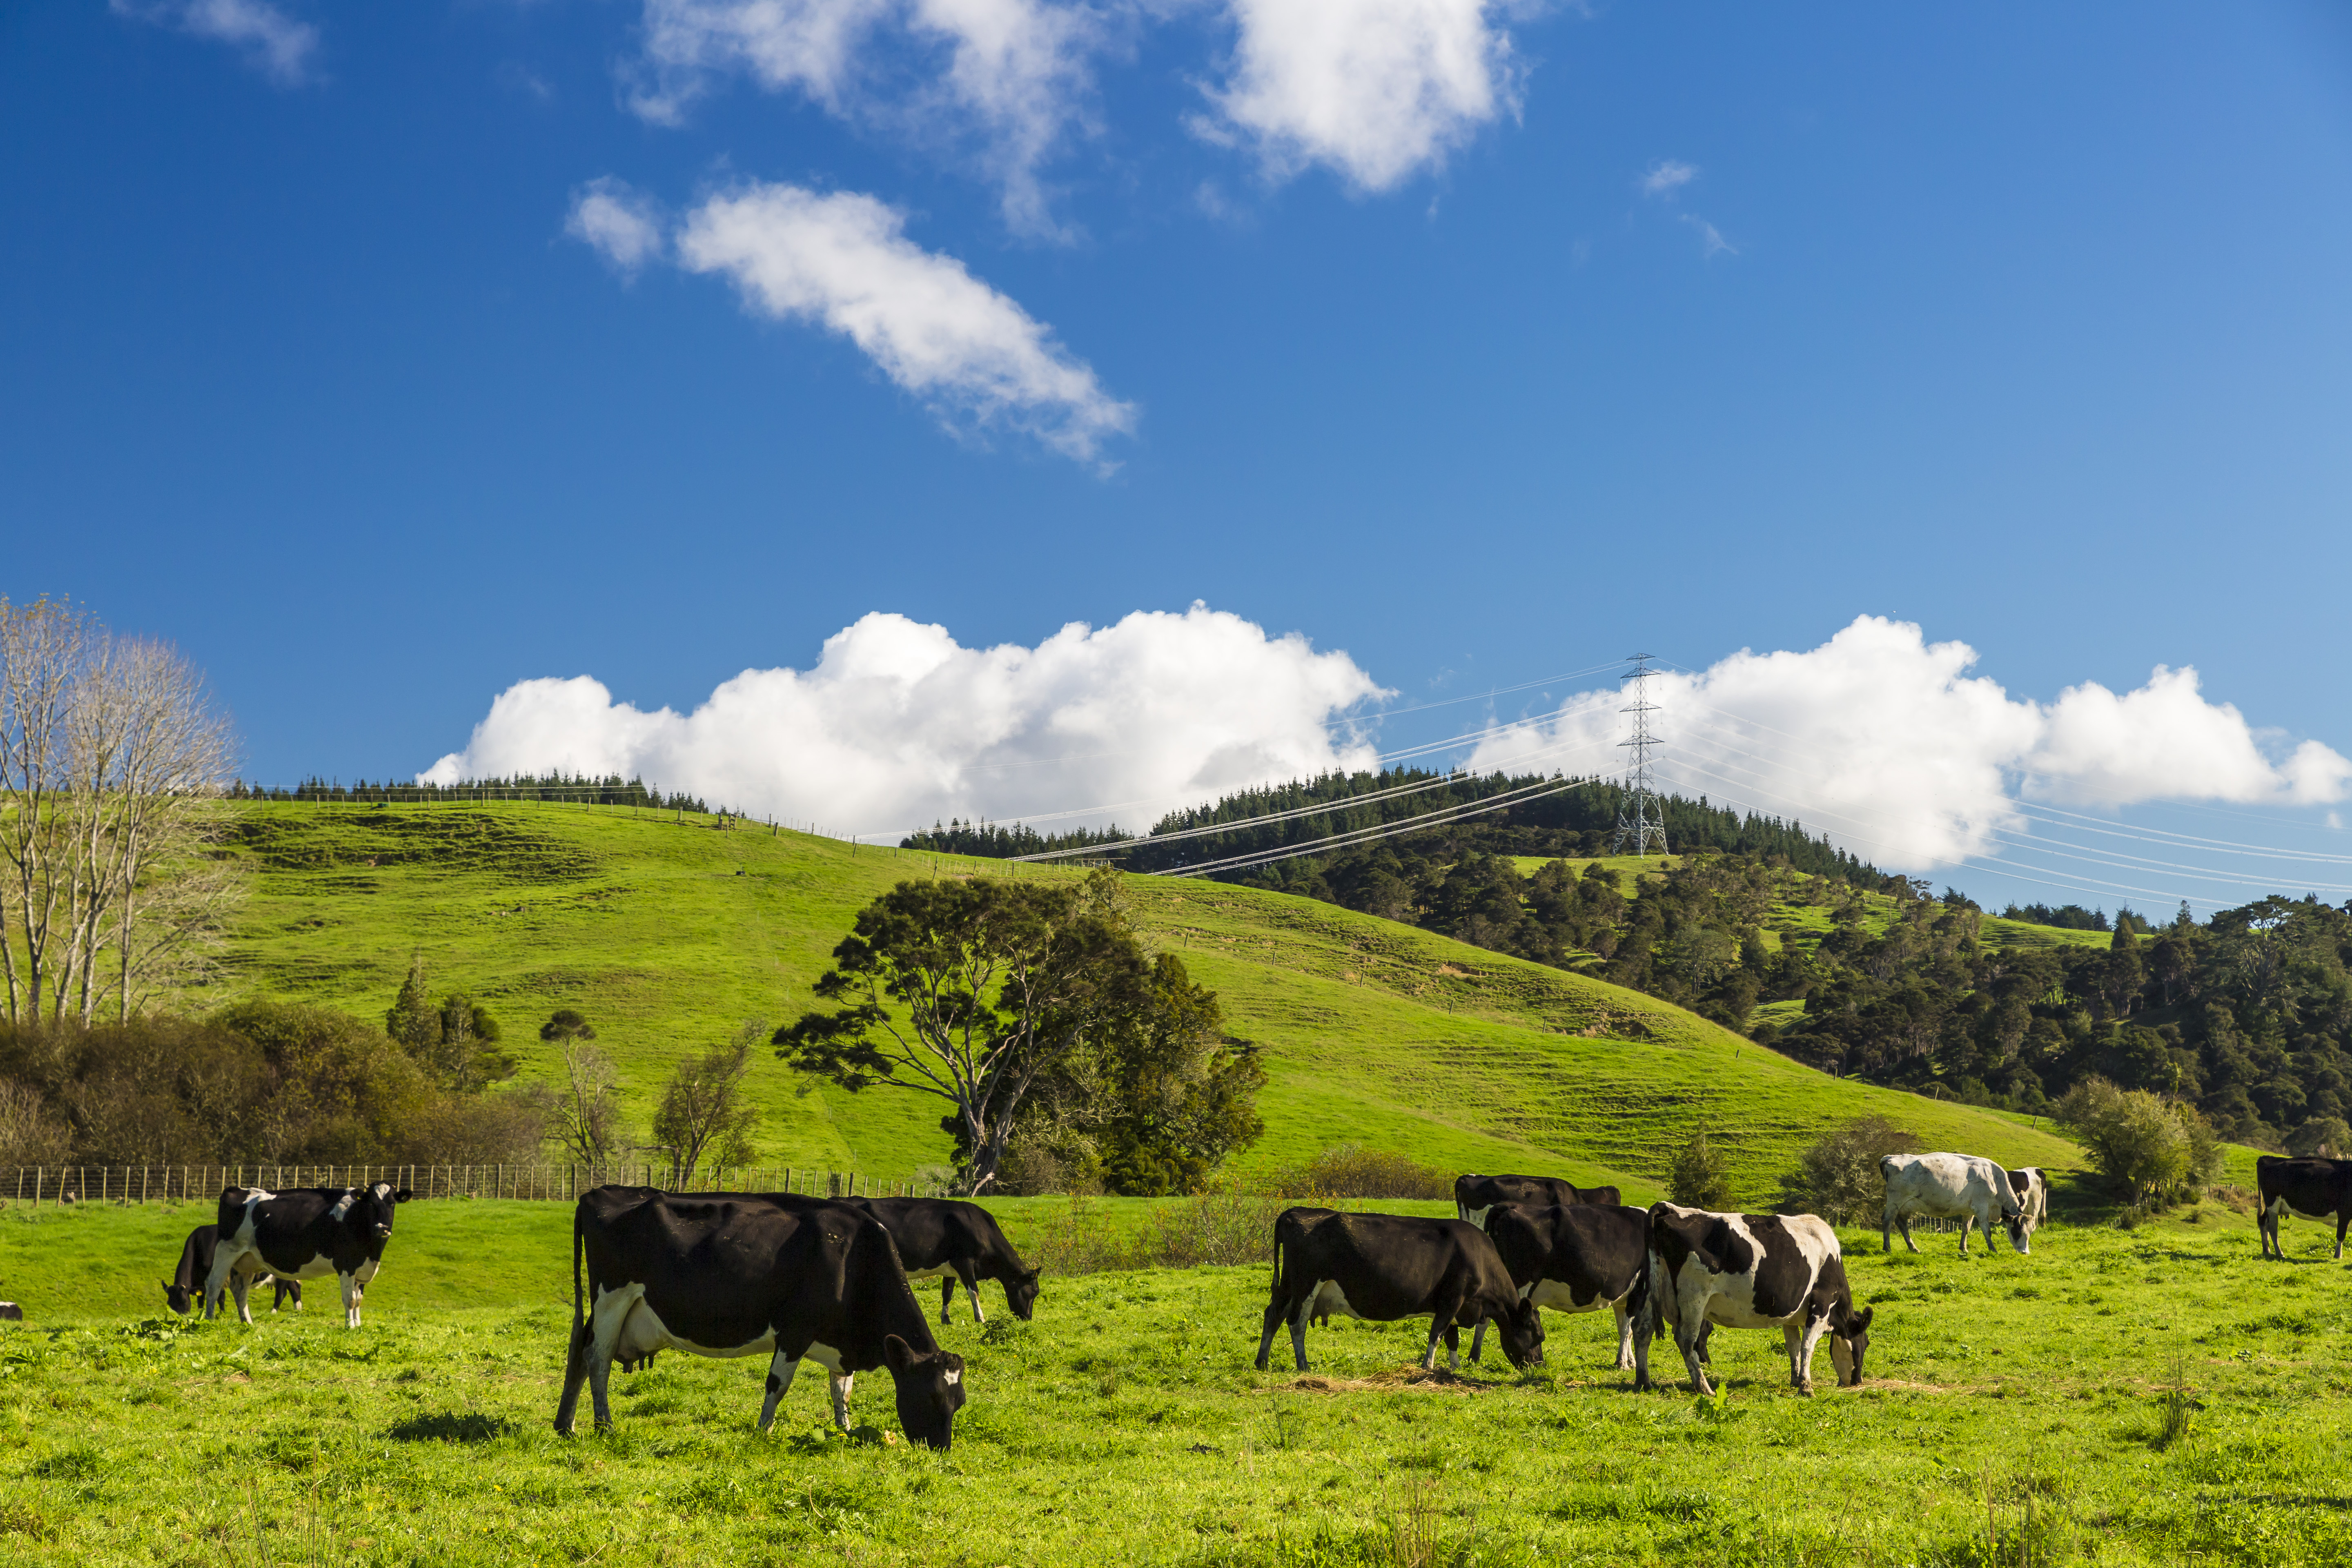 Group of cows in the